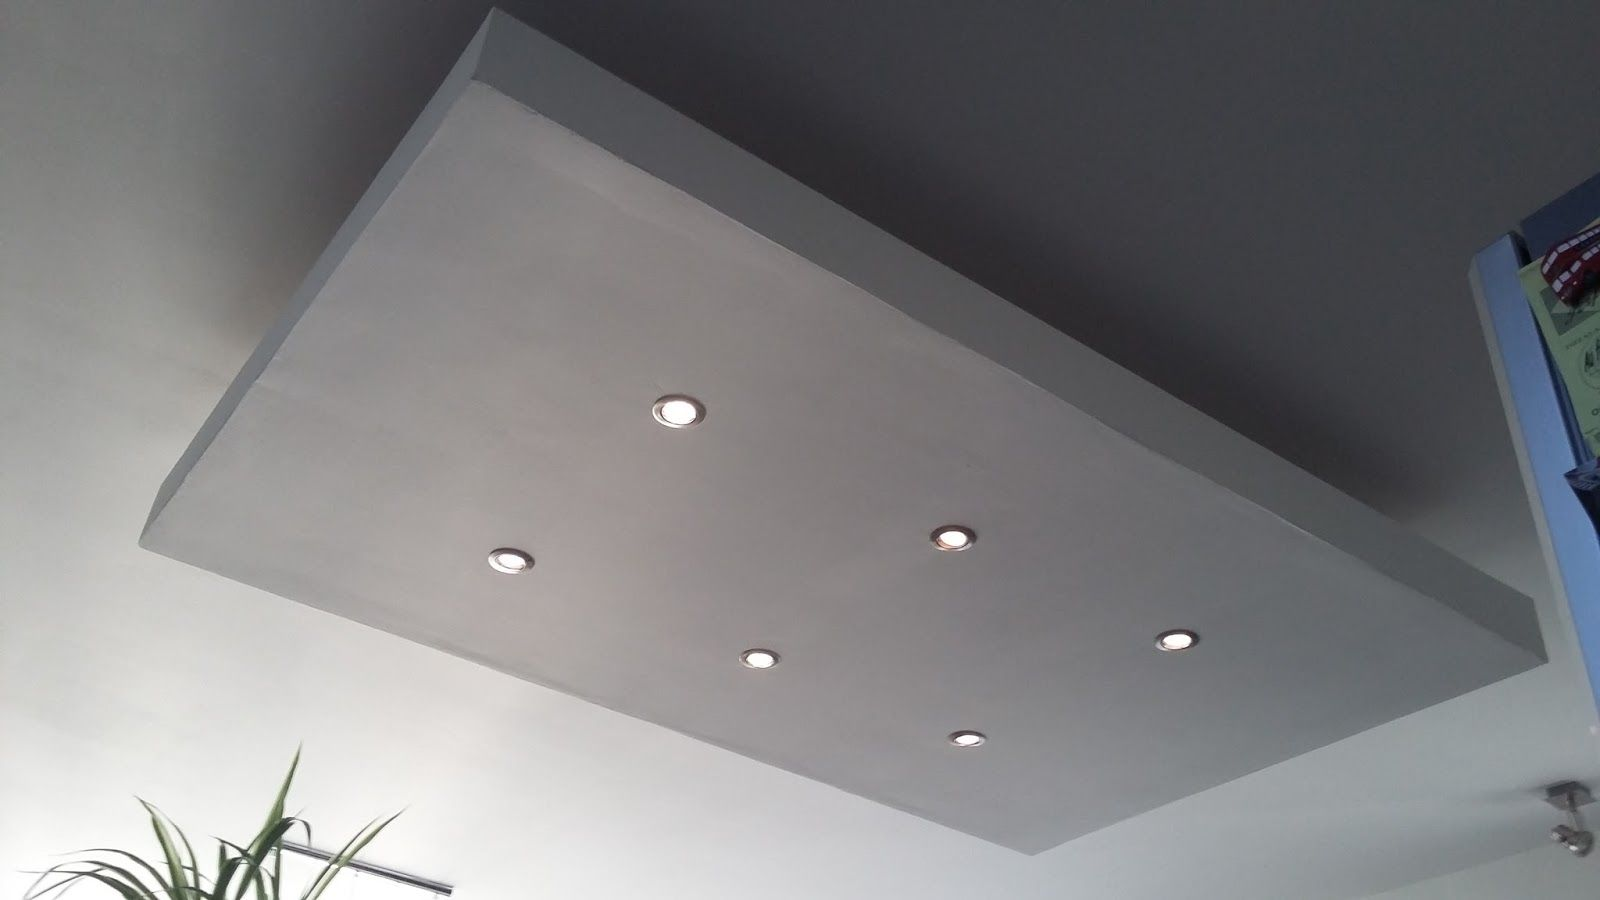 D roch plafond descendu suspendu ilot central decaissement design spots caisson placo platre - Faire les bandes de placo au plafond ...